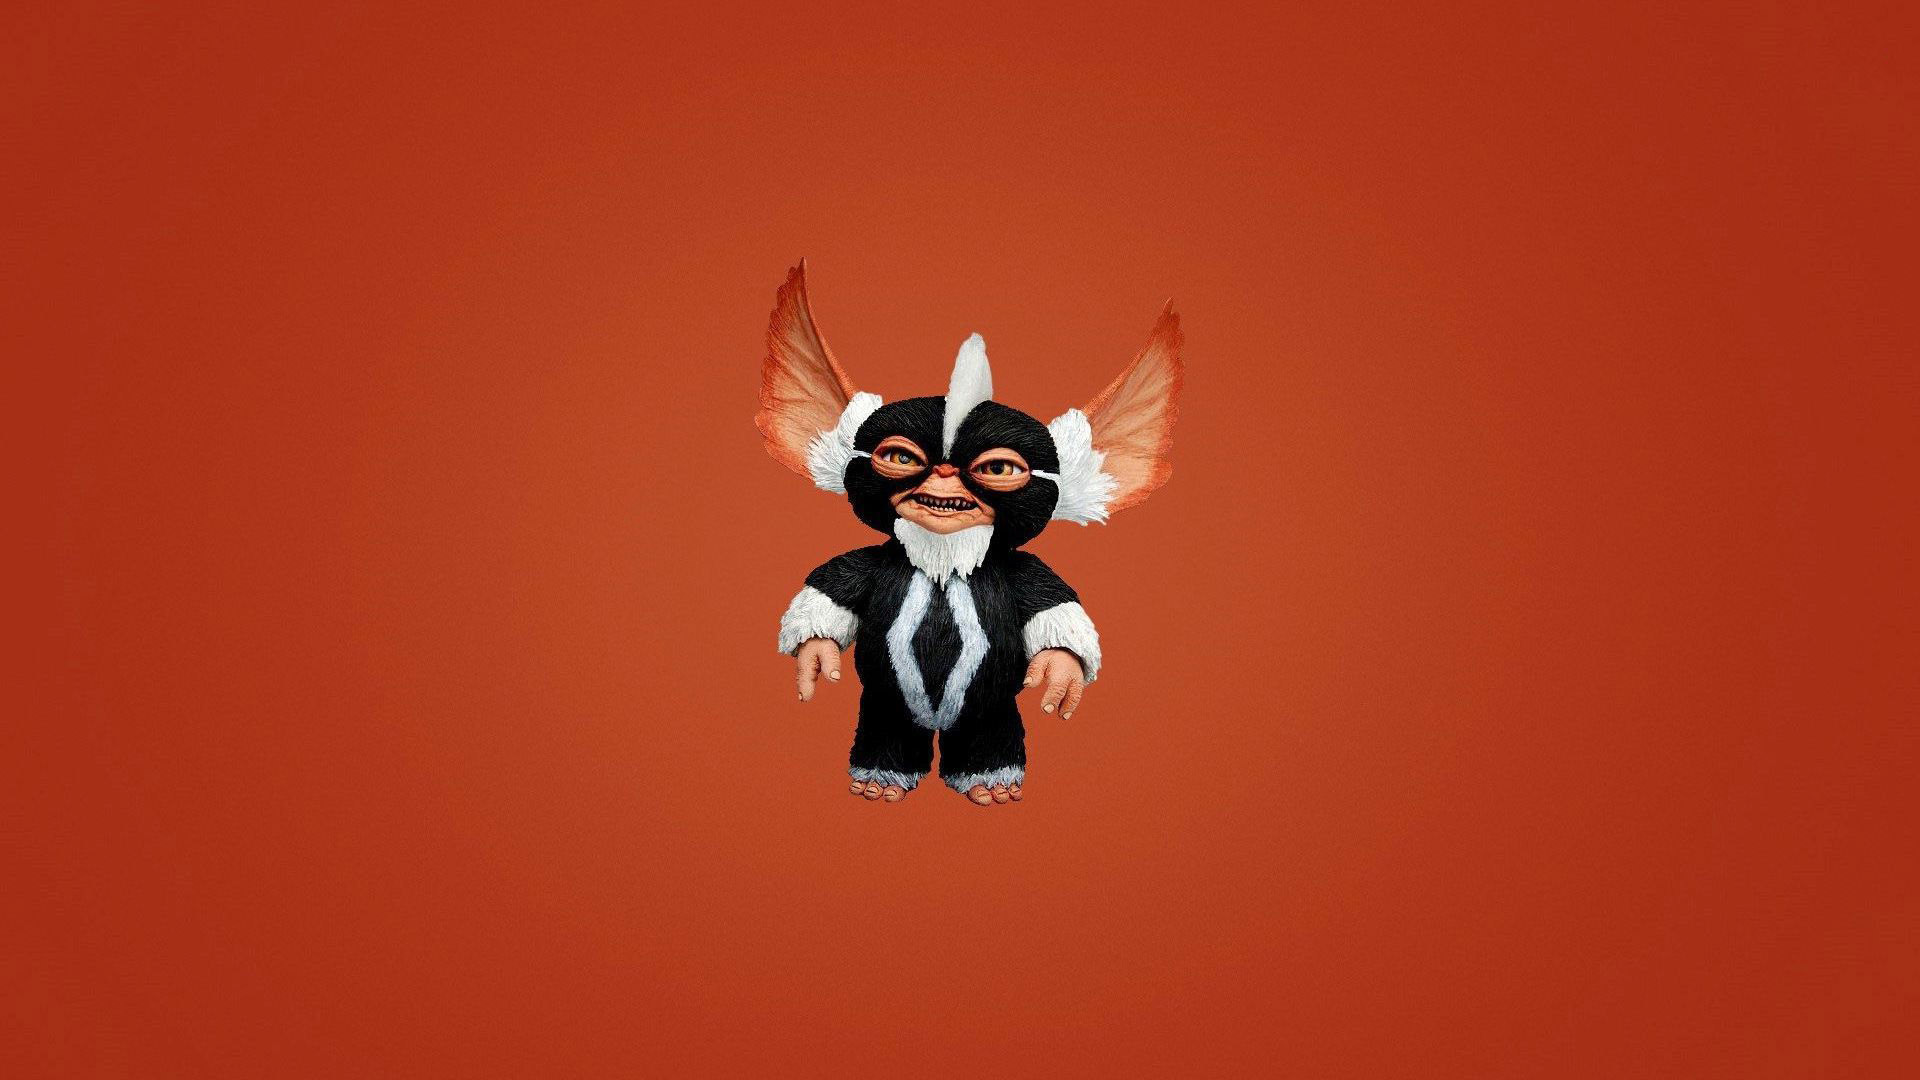 Res: 1920x1080, Gremlins Wallpapers 10 - 1920 X 1080